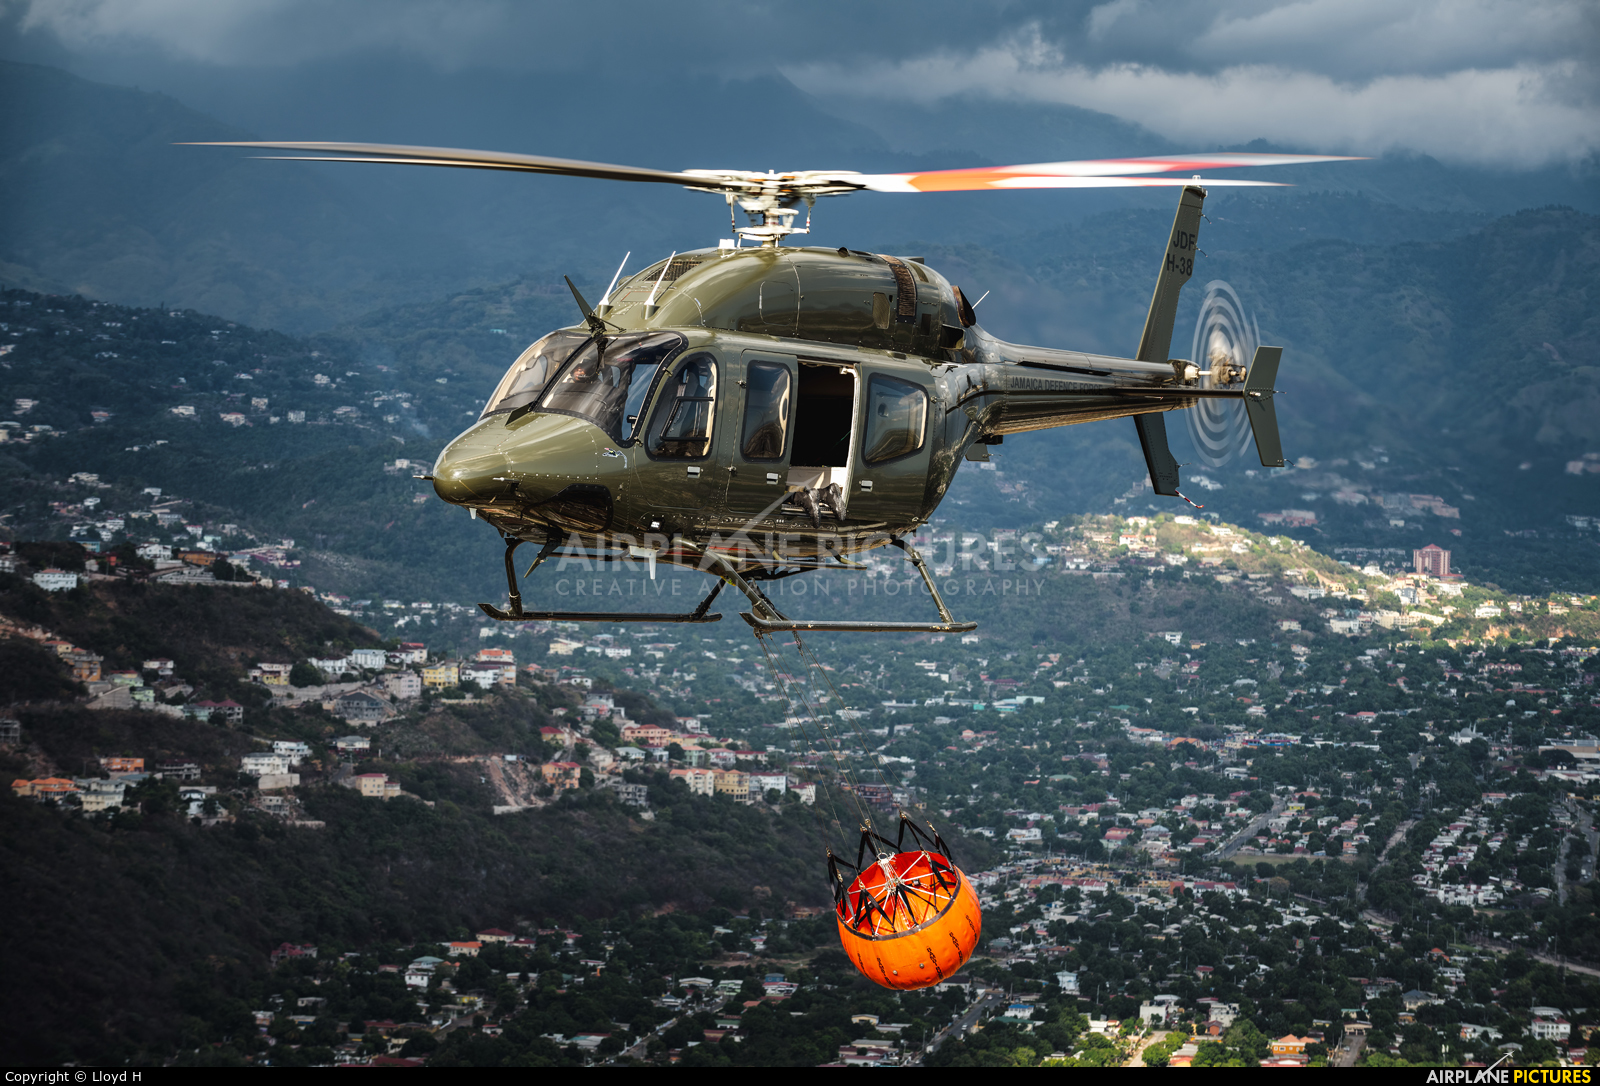 Jamaica - Jamaica Defence Force Air Wing JDFH-38 aircraft at In Flight